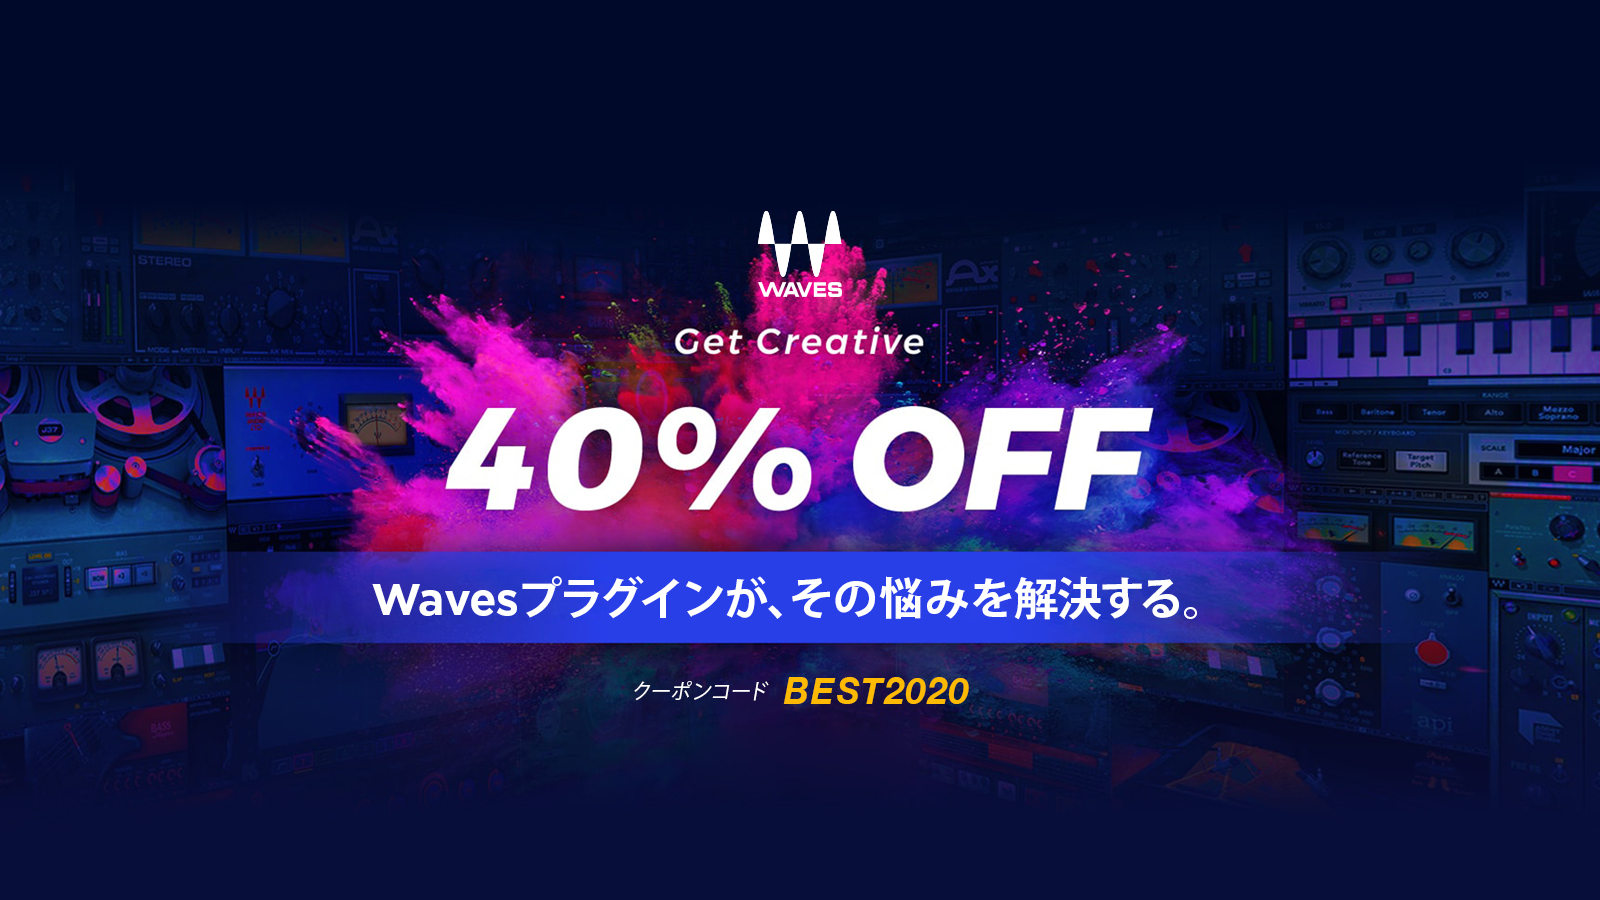 【40%OFF】Wavesほぼ全製品がクーポンで割引!条件クリアで無料プレゼントも!